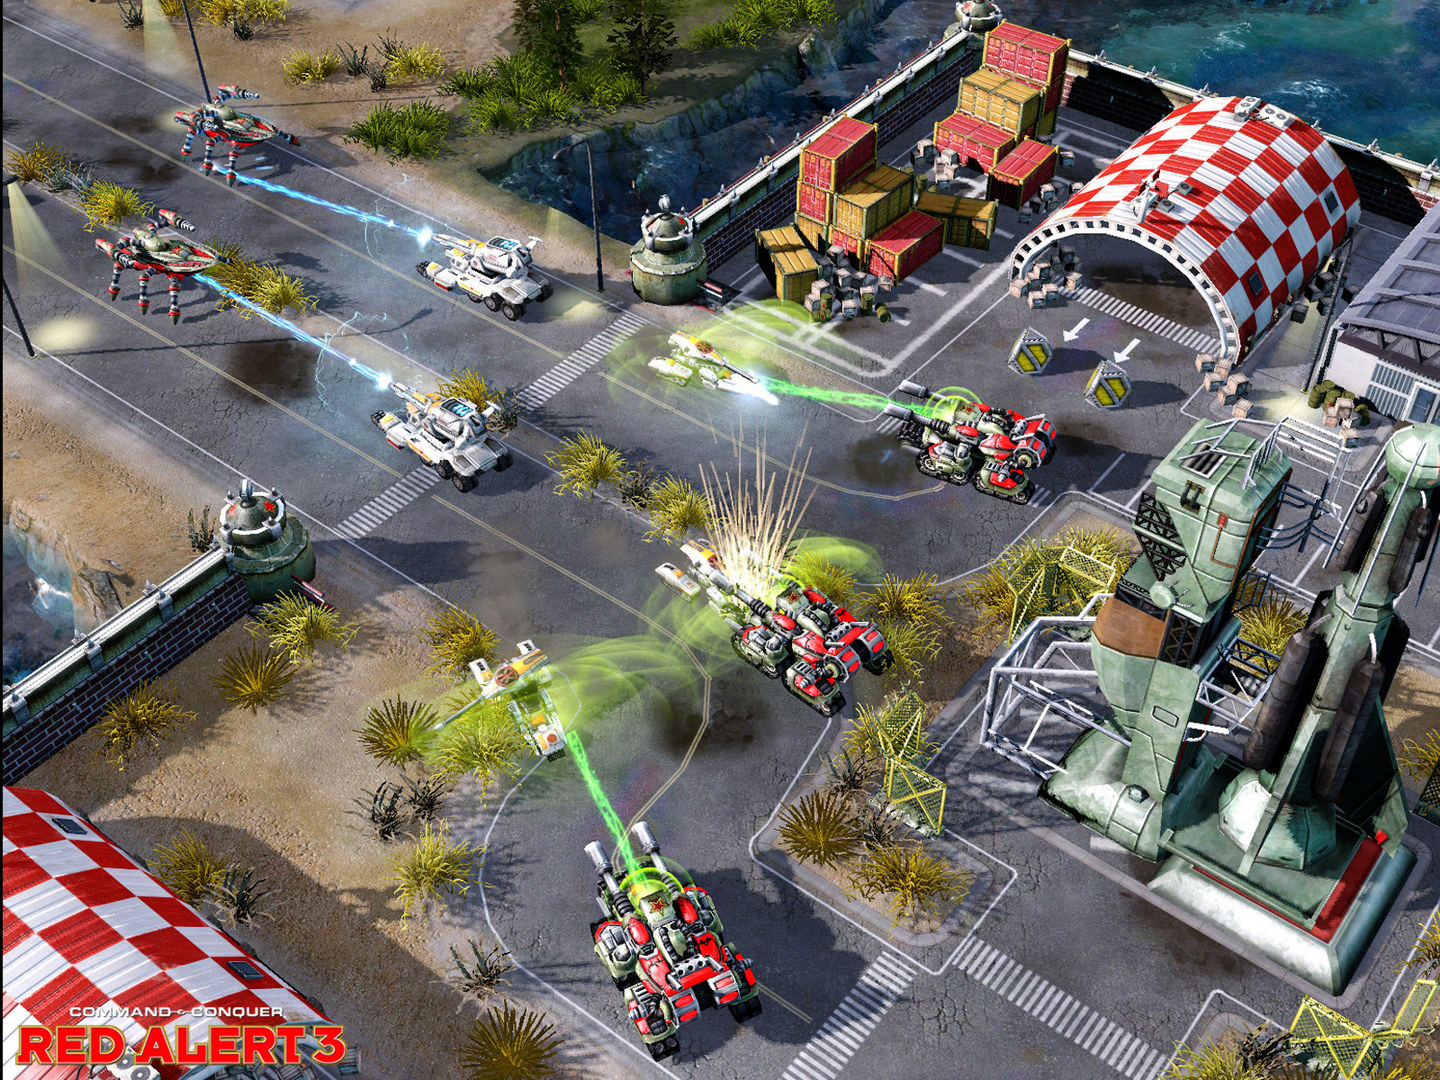 Windows and android free downloads: red alert 3 windows 7.